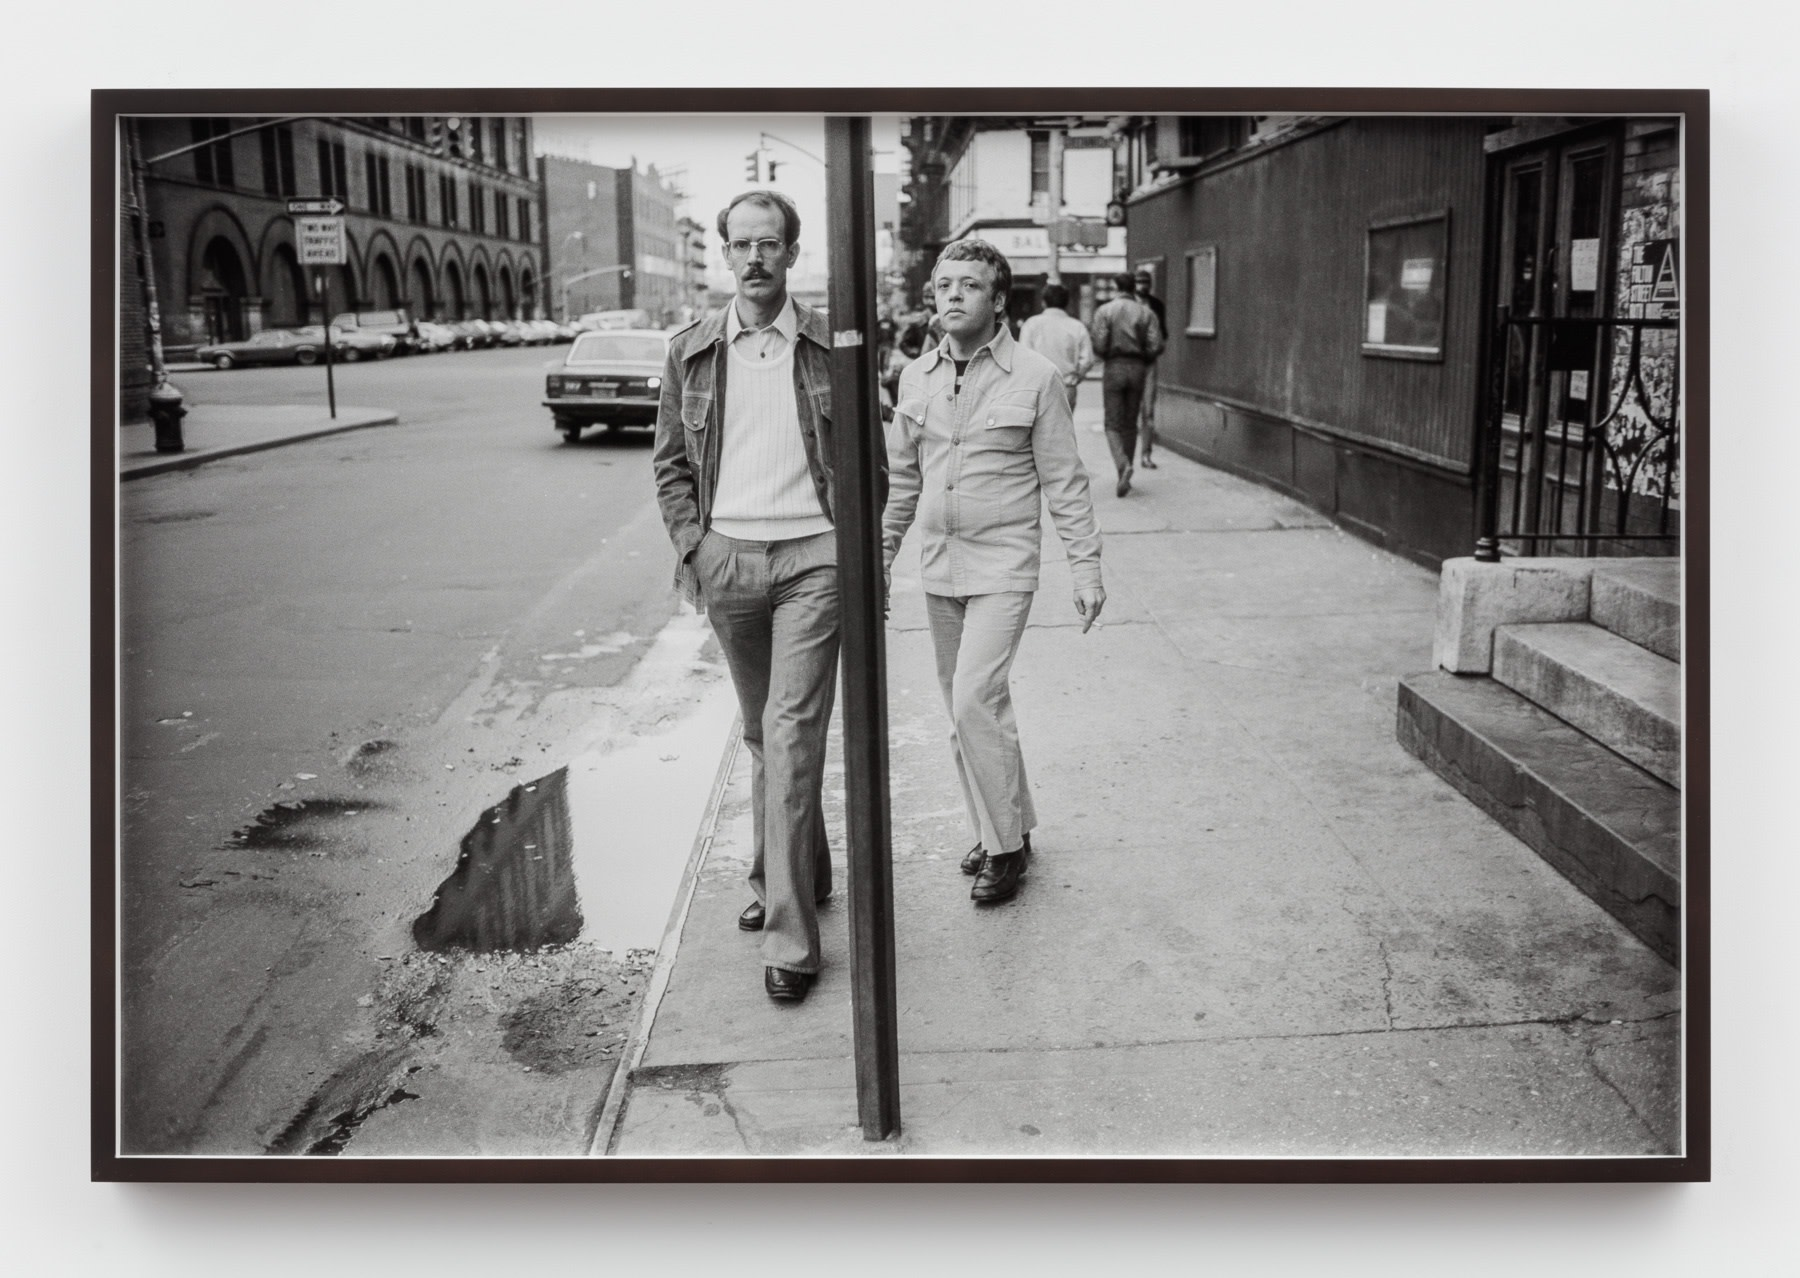 Sunil Gupta, Untitled #18 from the series Christopher Street, 1976/2019, Silver gelatin print, 61.1 x 91.7 cm, 24 1/8 x 36 1/8 in, Framed: 63.2 x 93.7 cm, 24 7/8 x 36 7/8 in, Edition of 5 plus 1 artist's proof